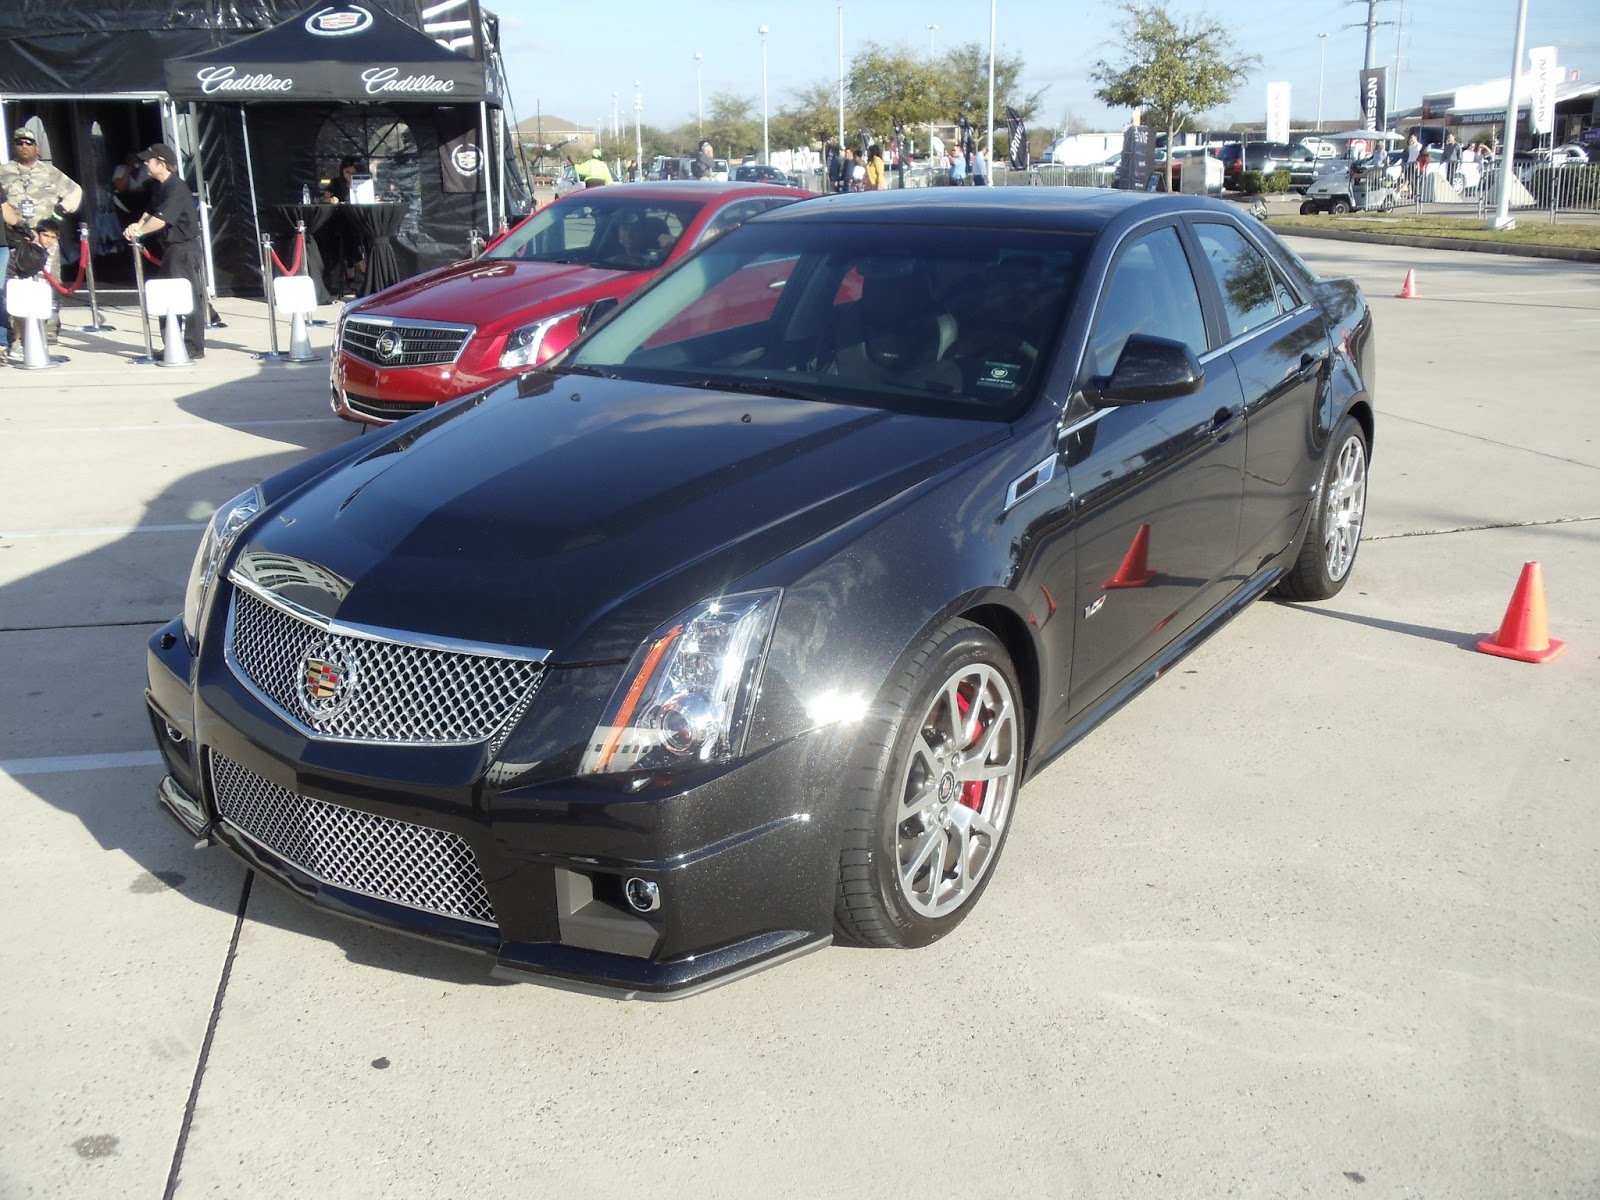 CarJunkies Car Review First Drive 2013 Cadillac CTSV Sedan